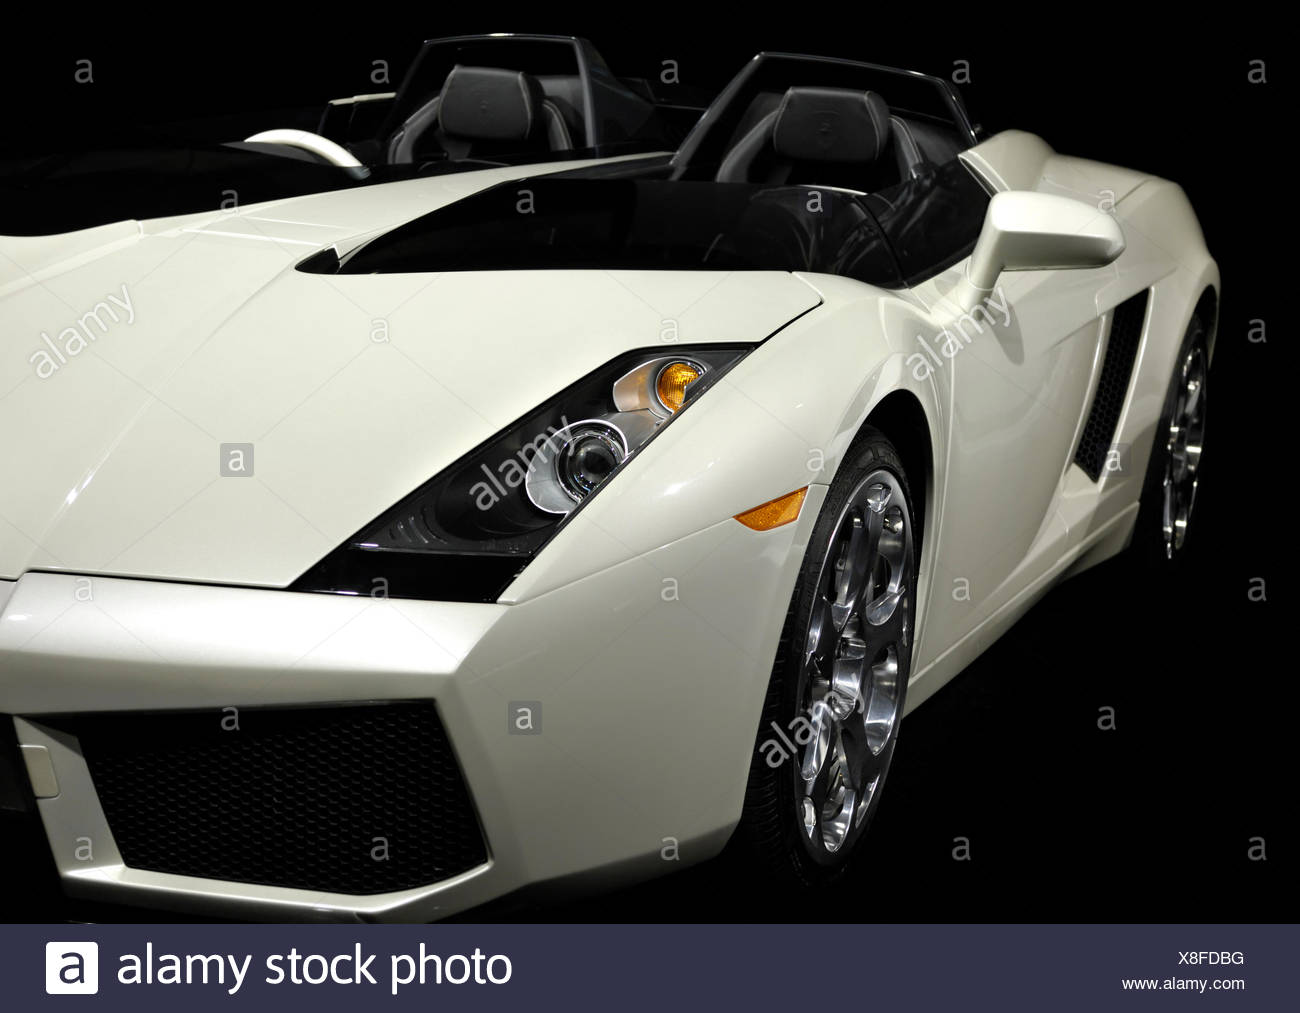 lamborghini super car 2005 concept s stock photo 280622932 alamy